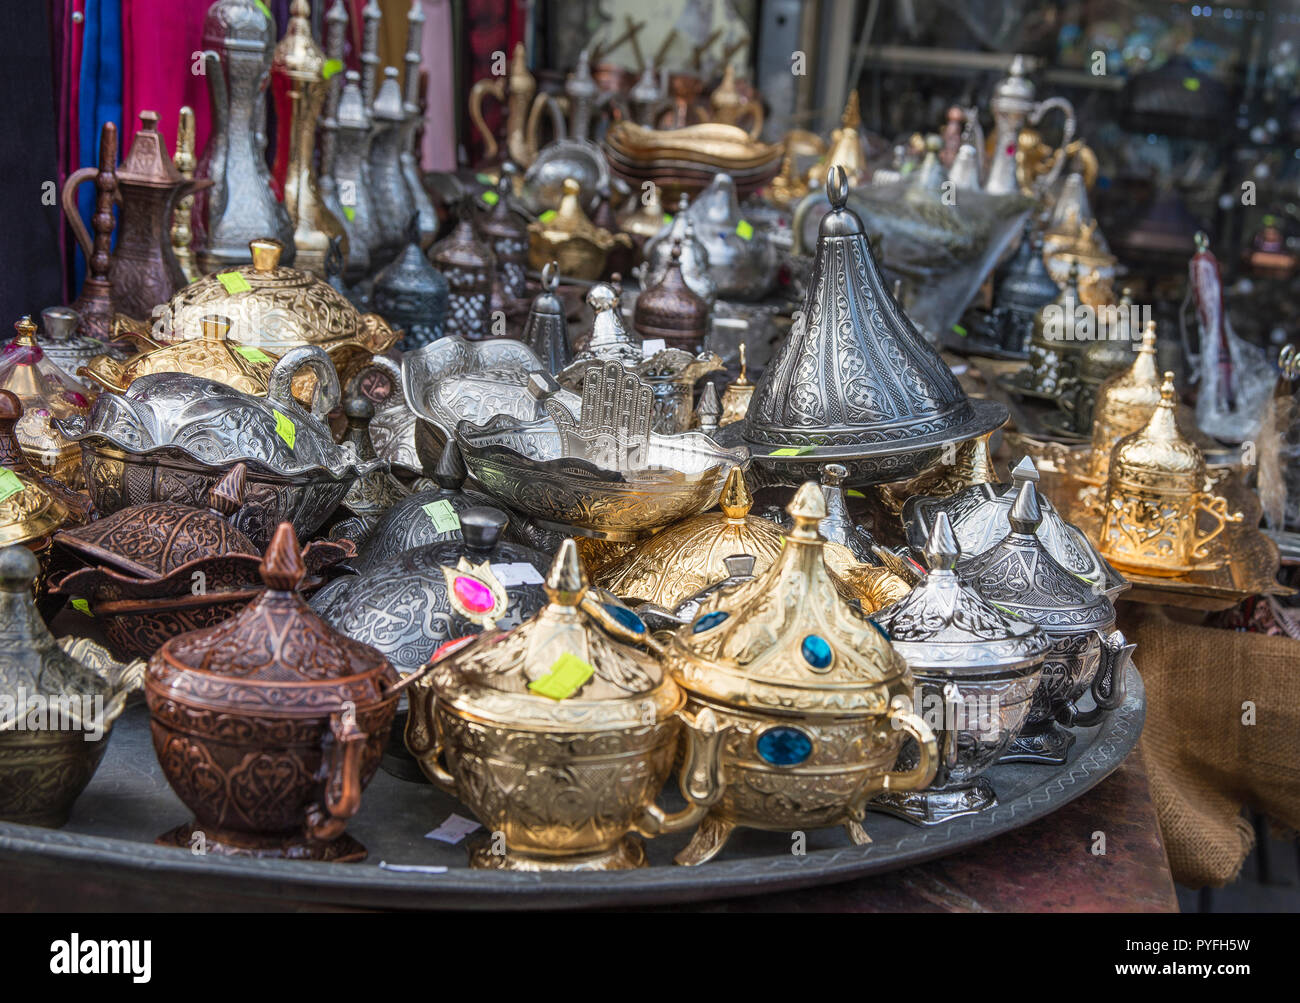 Souvenirs shops in historic old town of Istanbul Stock Photo